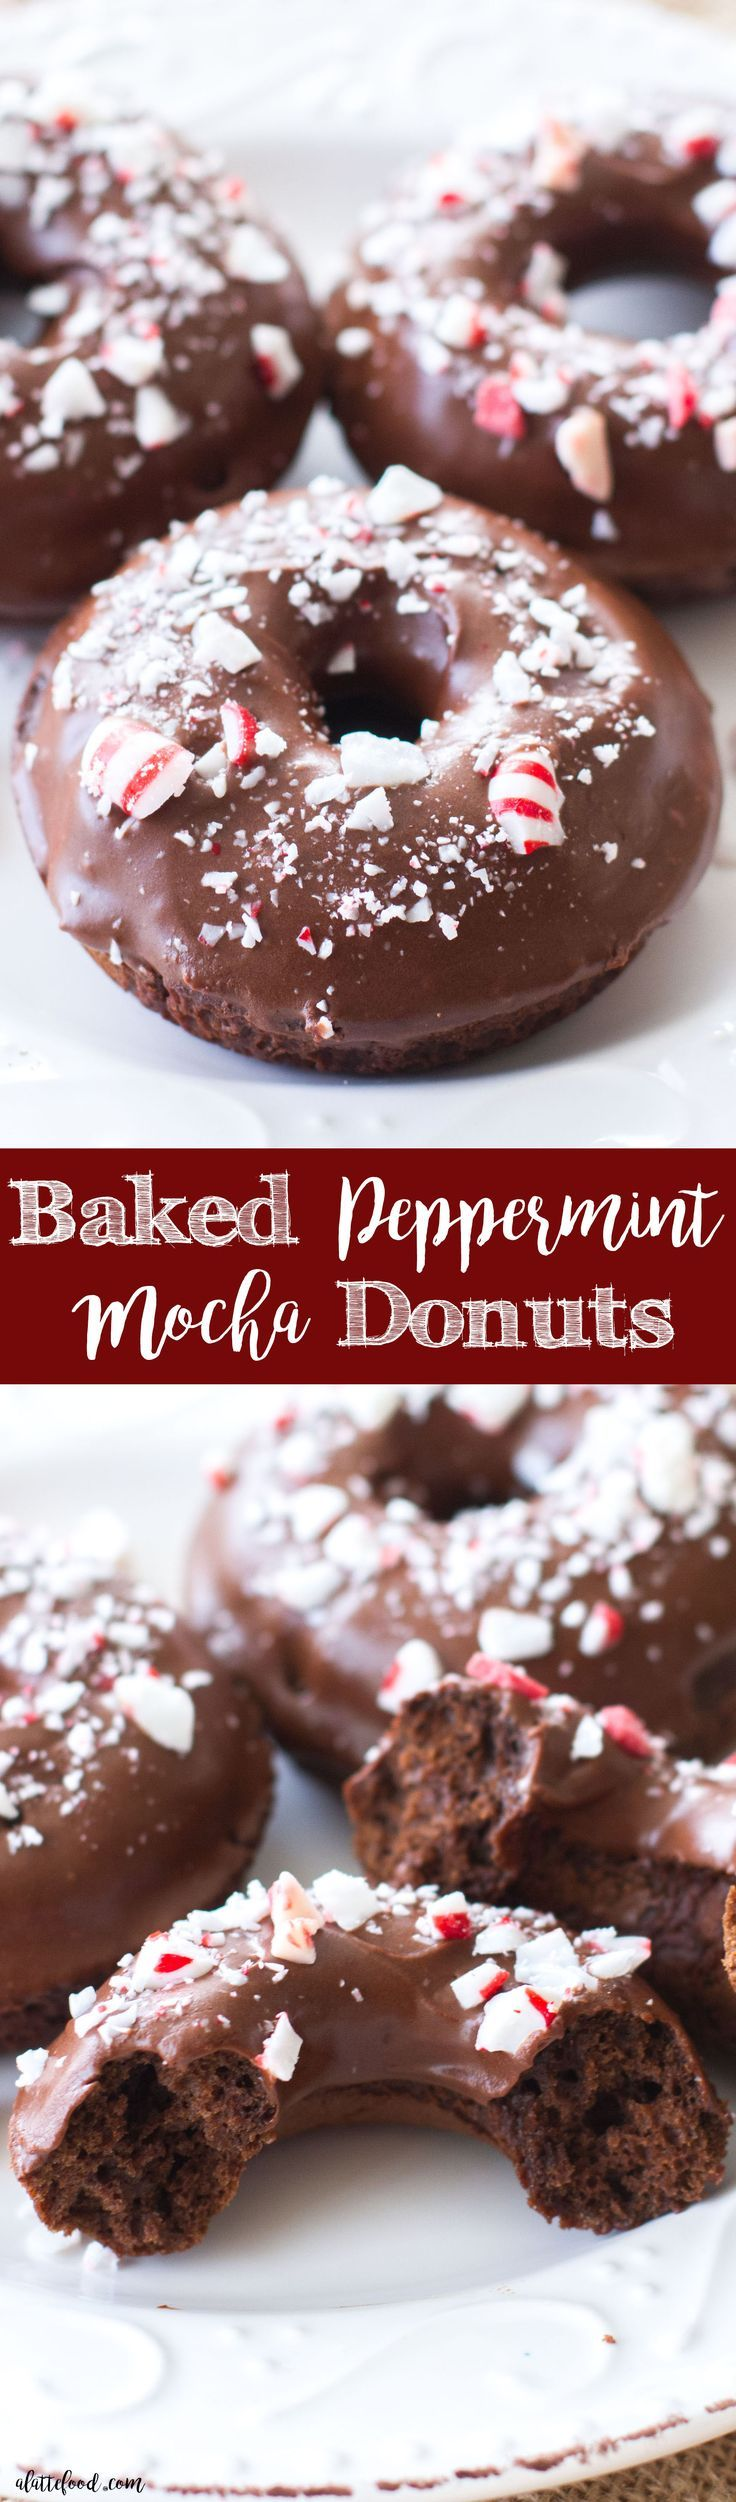 These easy baked chocolate donuts are filled with coffee and rich chocolate, and topped with a chocolate peppermint glaze. The perfect Christmas dessert! A simple chocolate donut recipe you're sure to love!